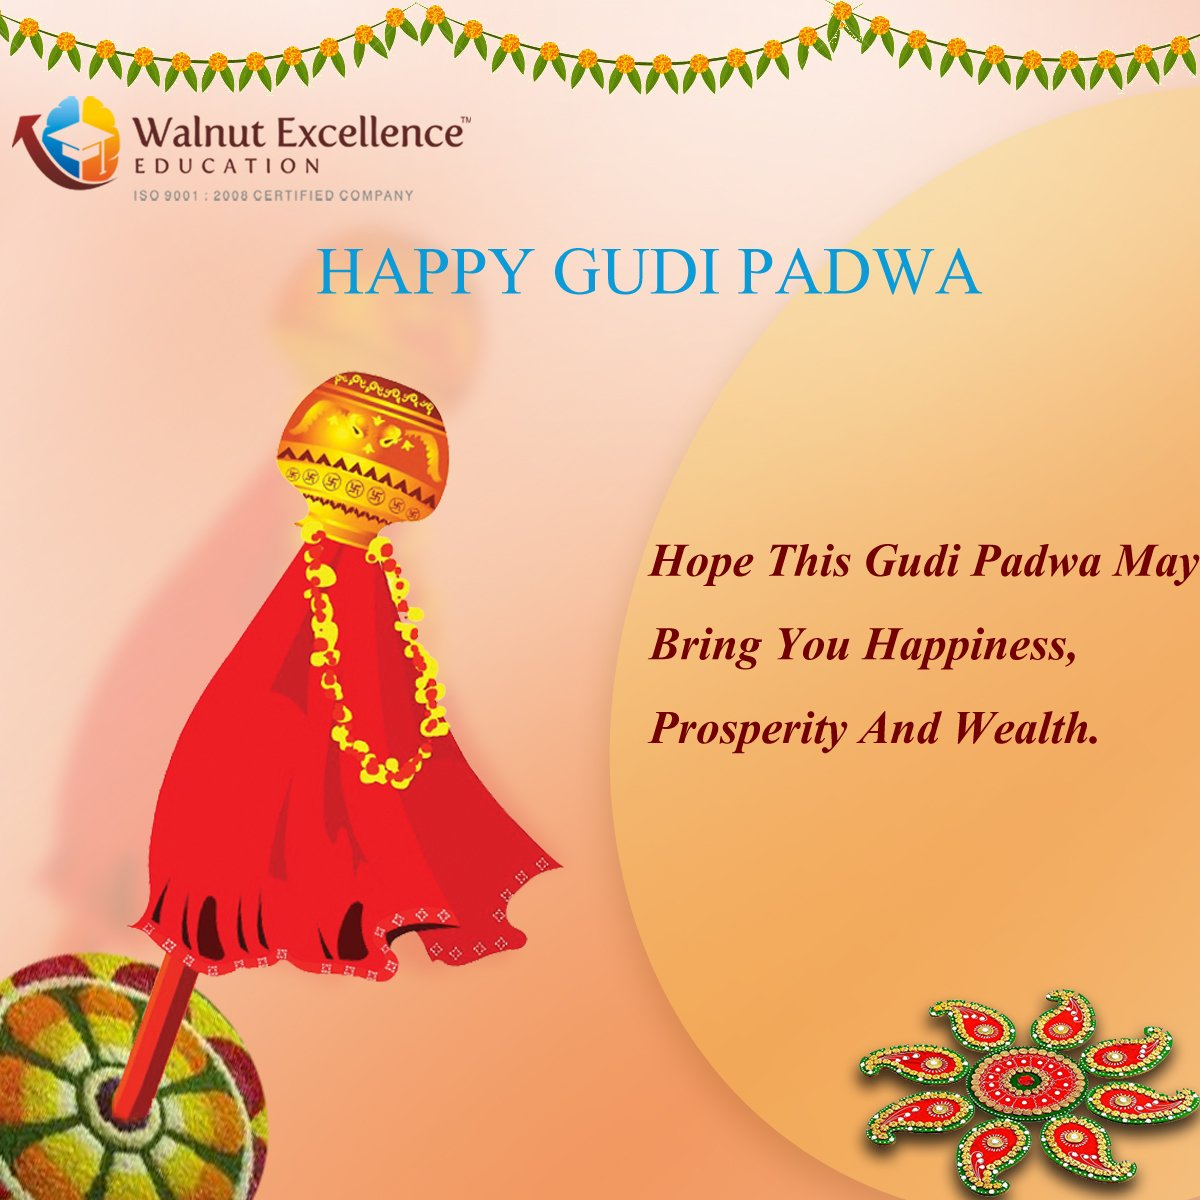 May this year brings you #success and a lot of #Love and #Happiness Happy #GudiPadwa #GudiPadwa2017 #HappyNewYear2017 #HappyNewYear<br>http://pic.twitter.com/VFkH7jdJZ6